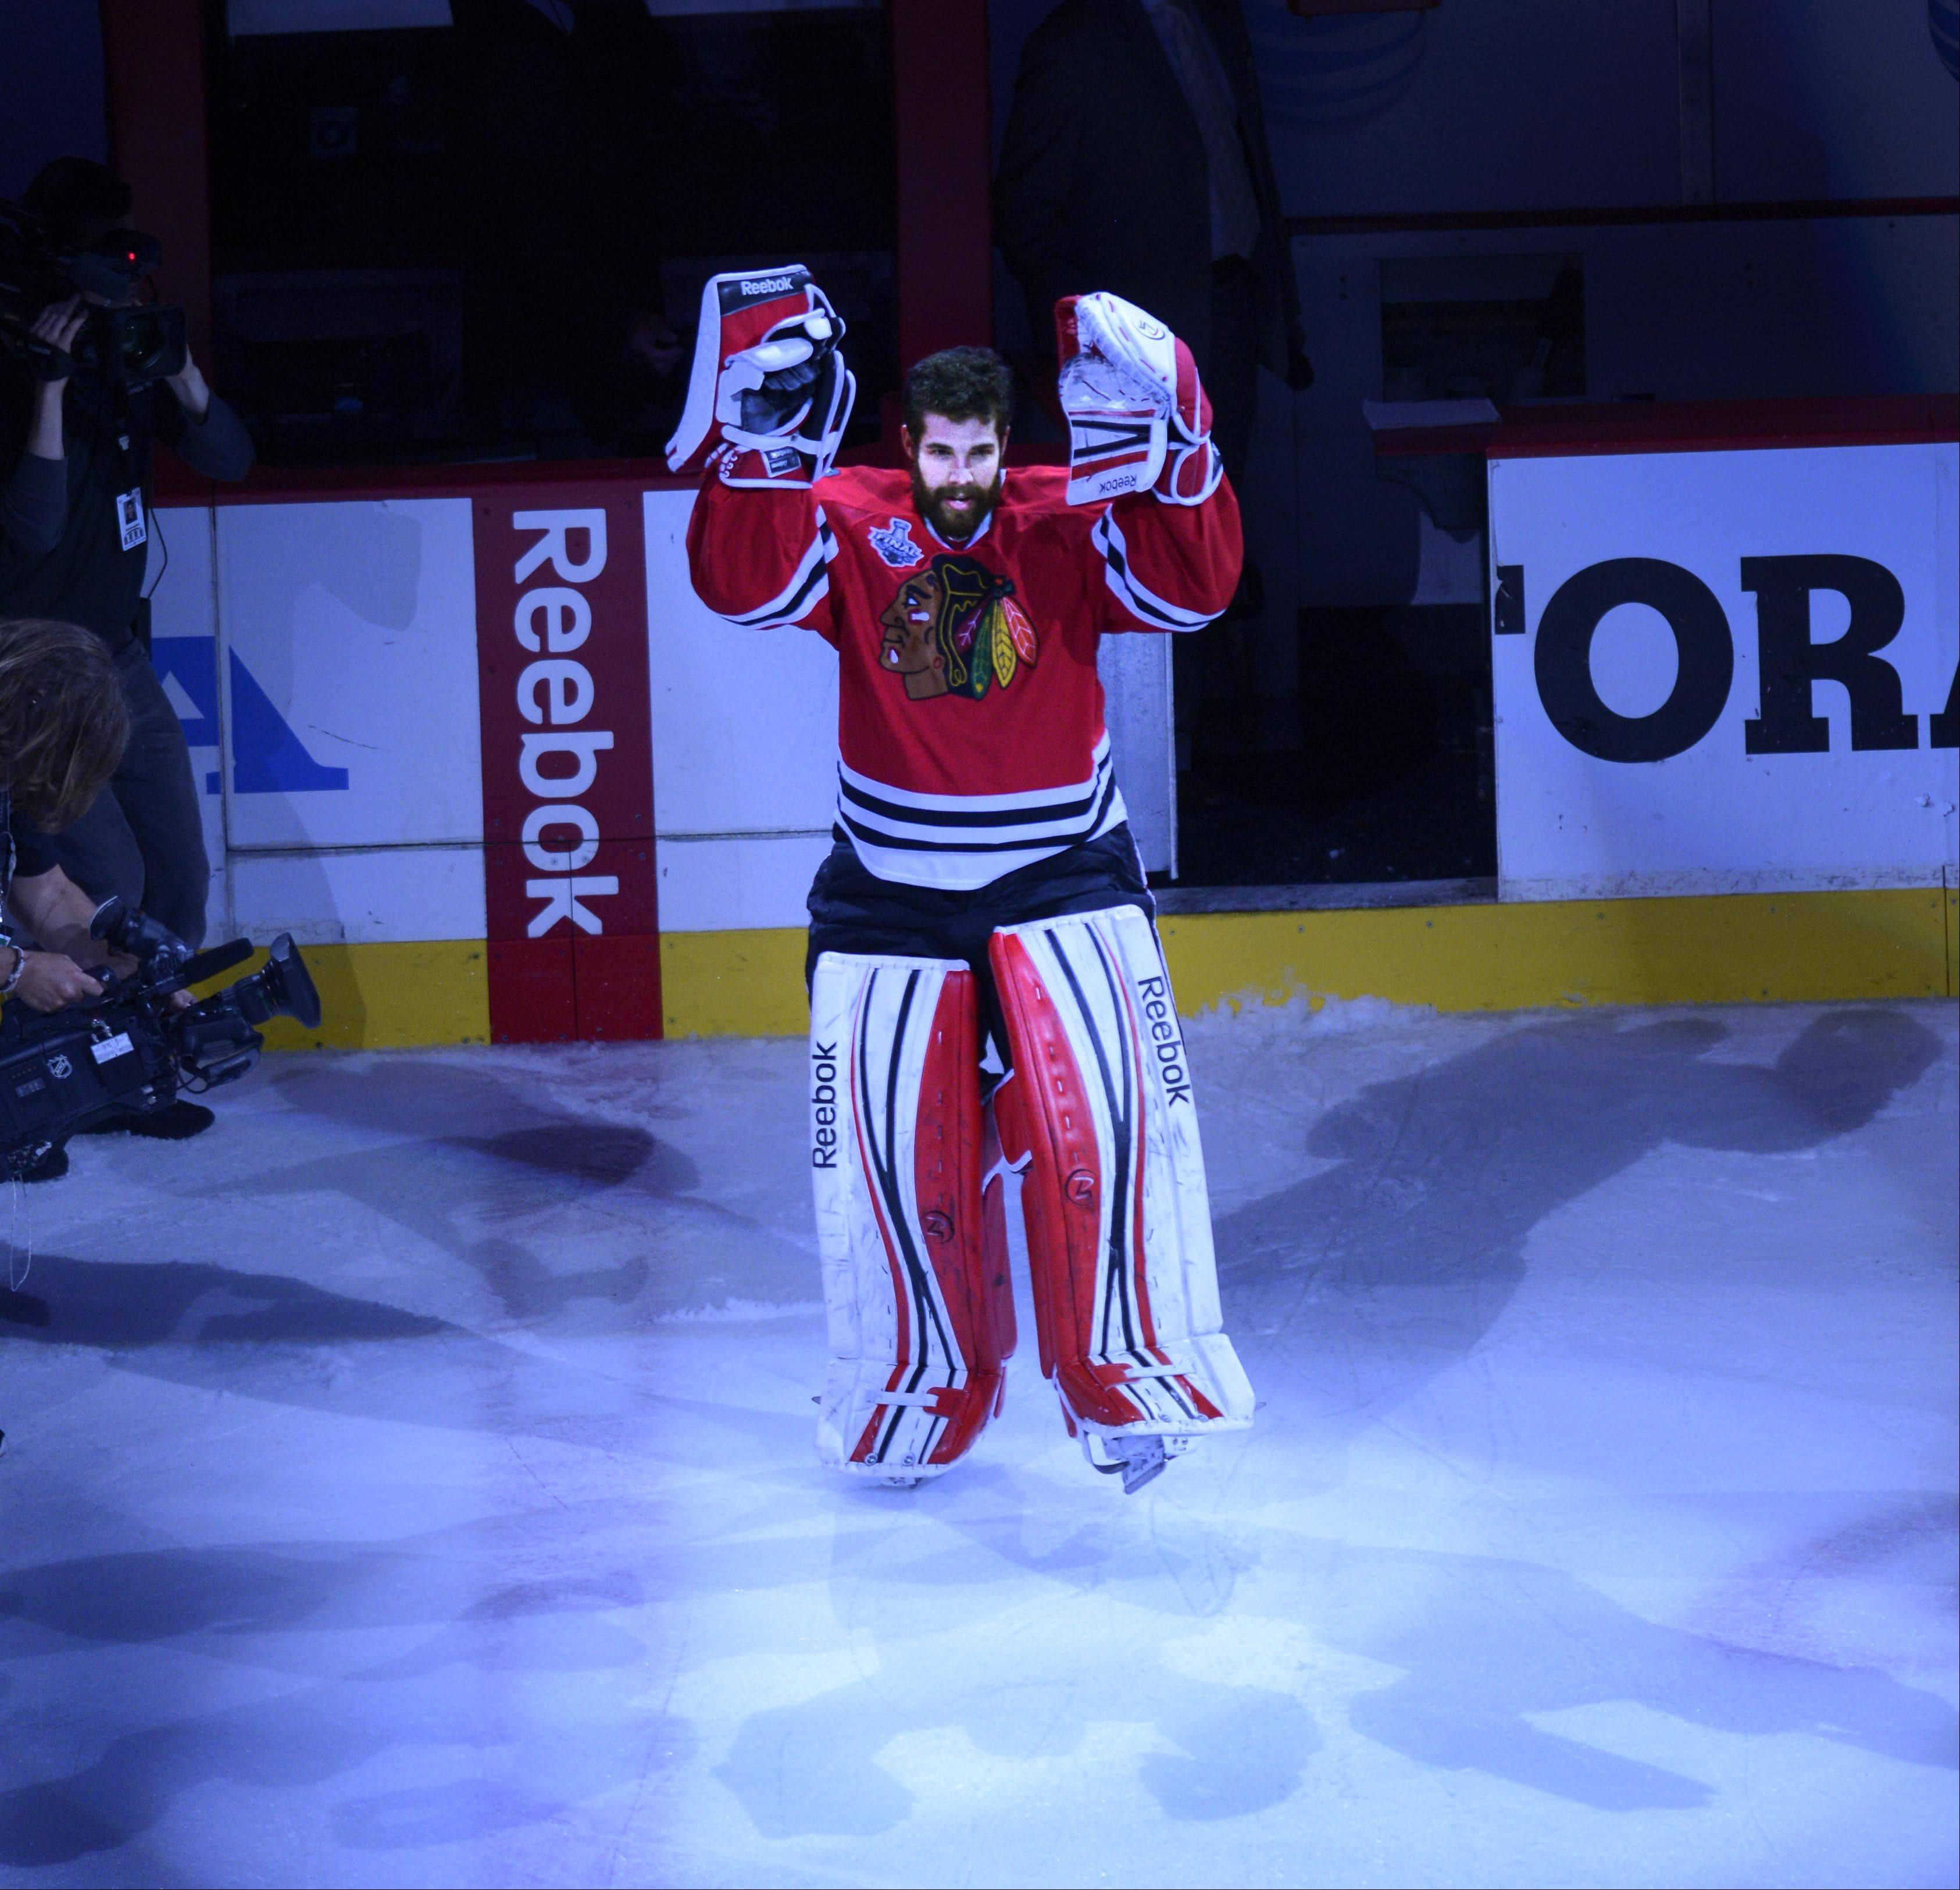 John Starks/jstarks@dailyherald.comChicago Blackhawks goalie Corey Crawford was one of the stars of the game Saturday in Game 5 of the Stanley Cup Finals at the United Center in Chicago.